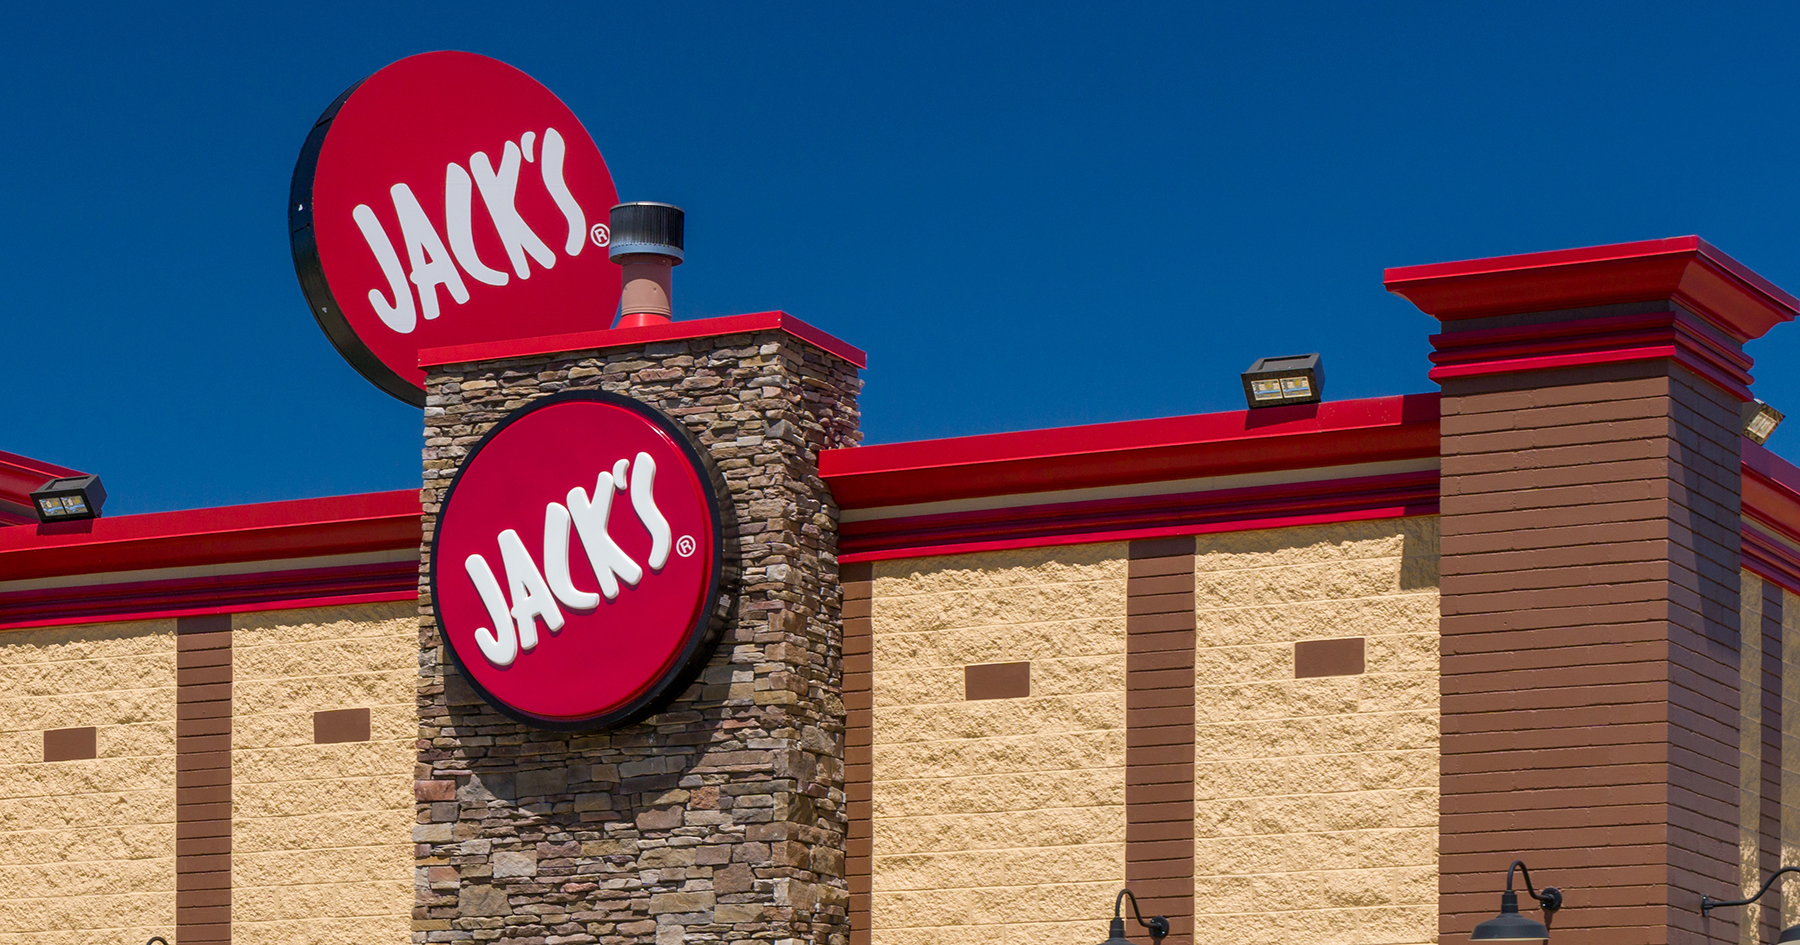 jack's family restaurants